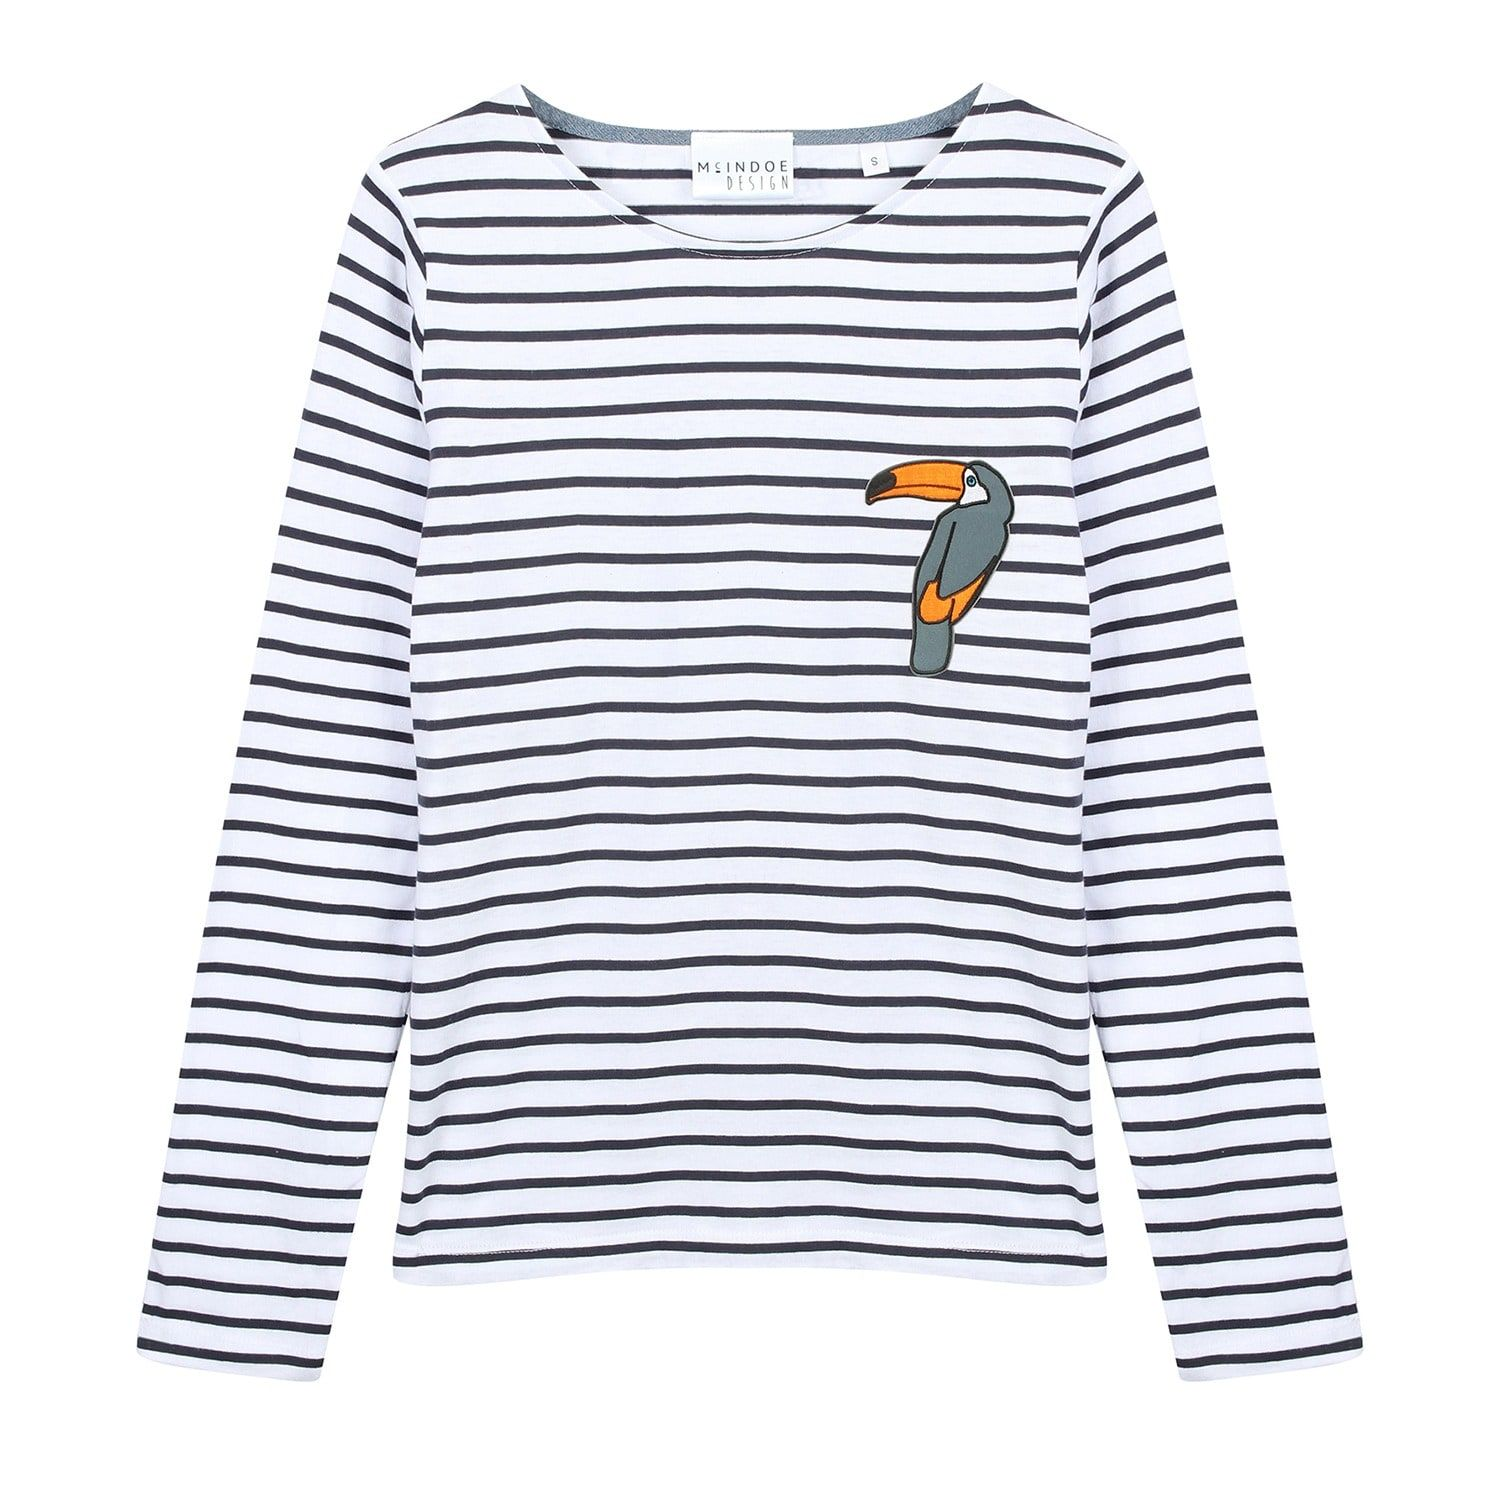 Mcindoe design toucan patch longsleeved tshirt navy and white